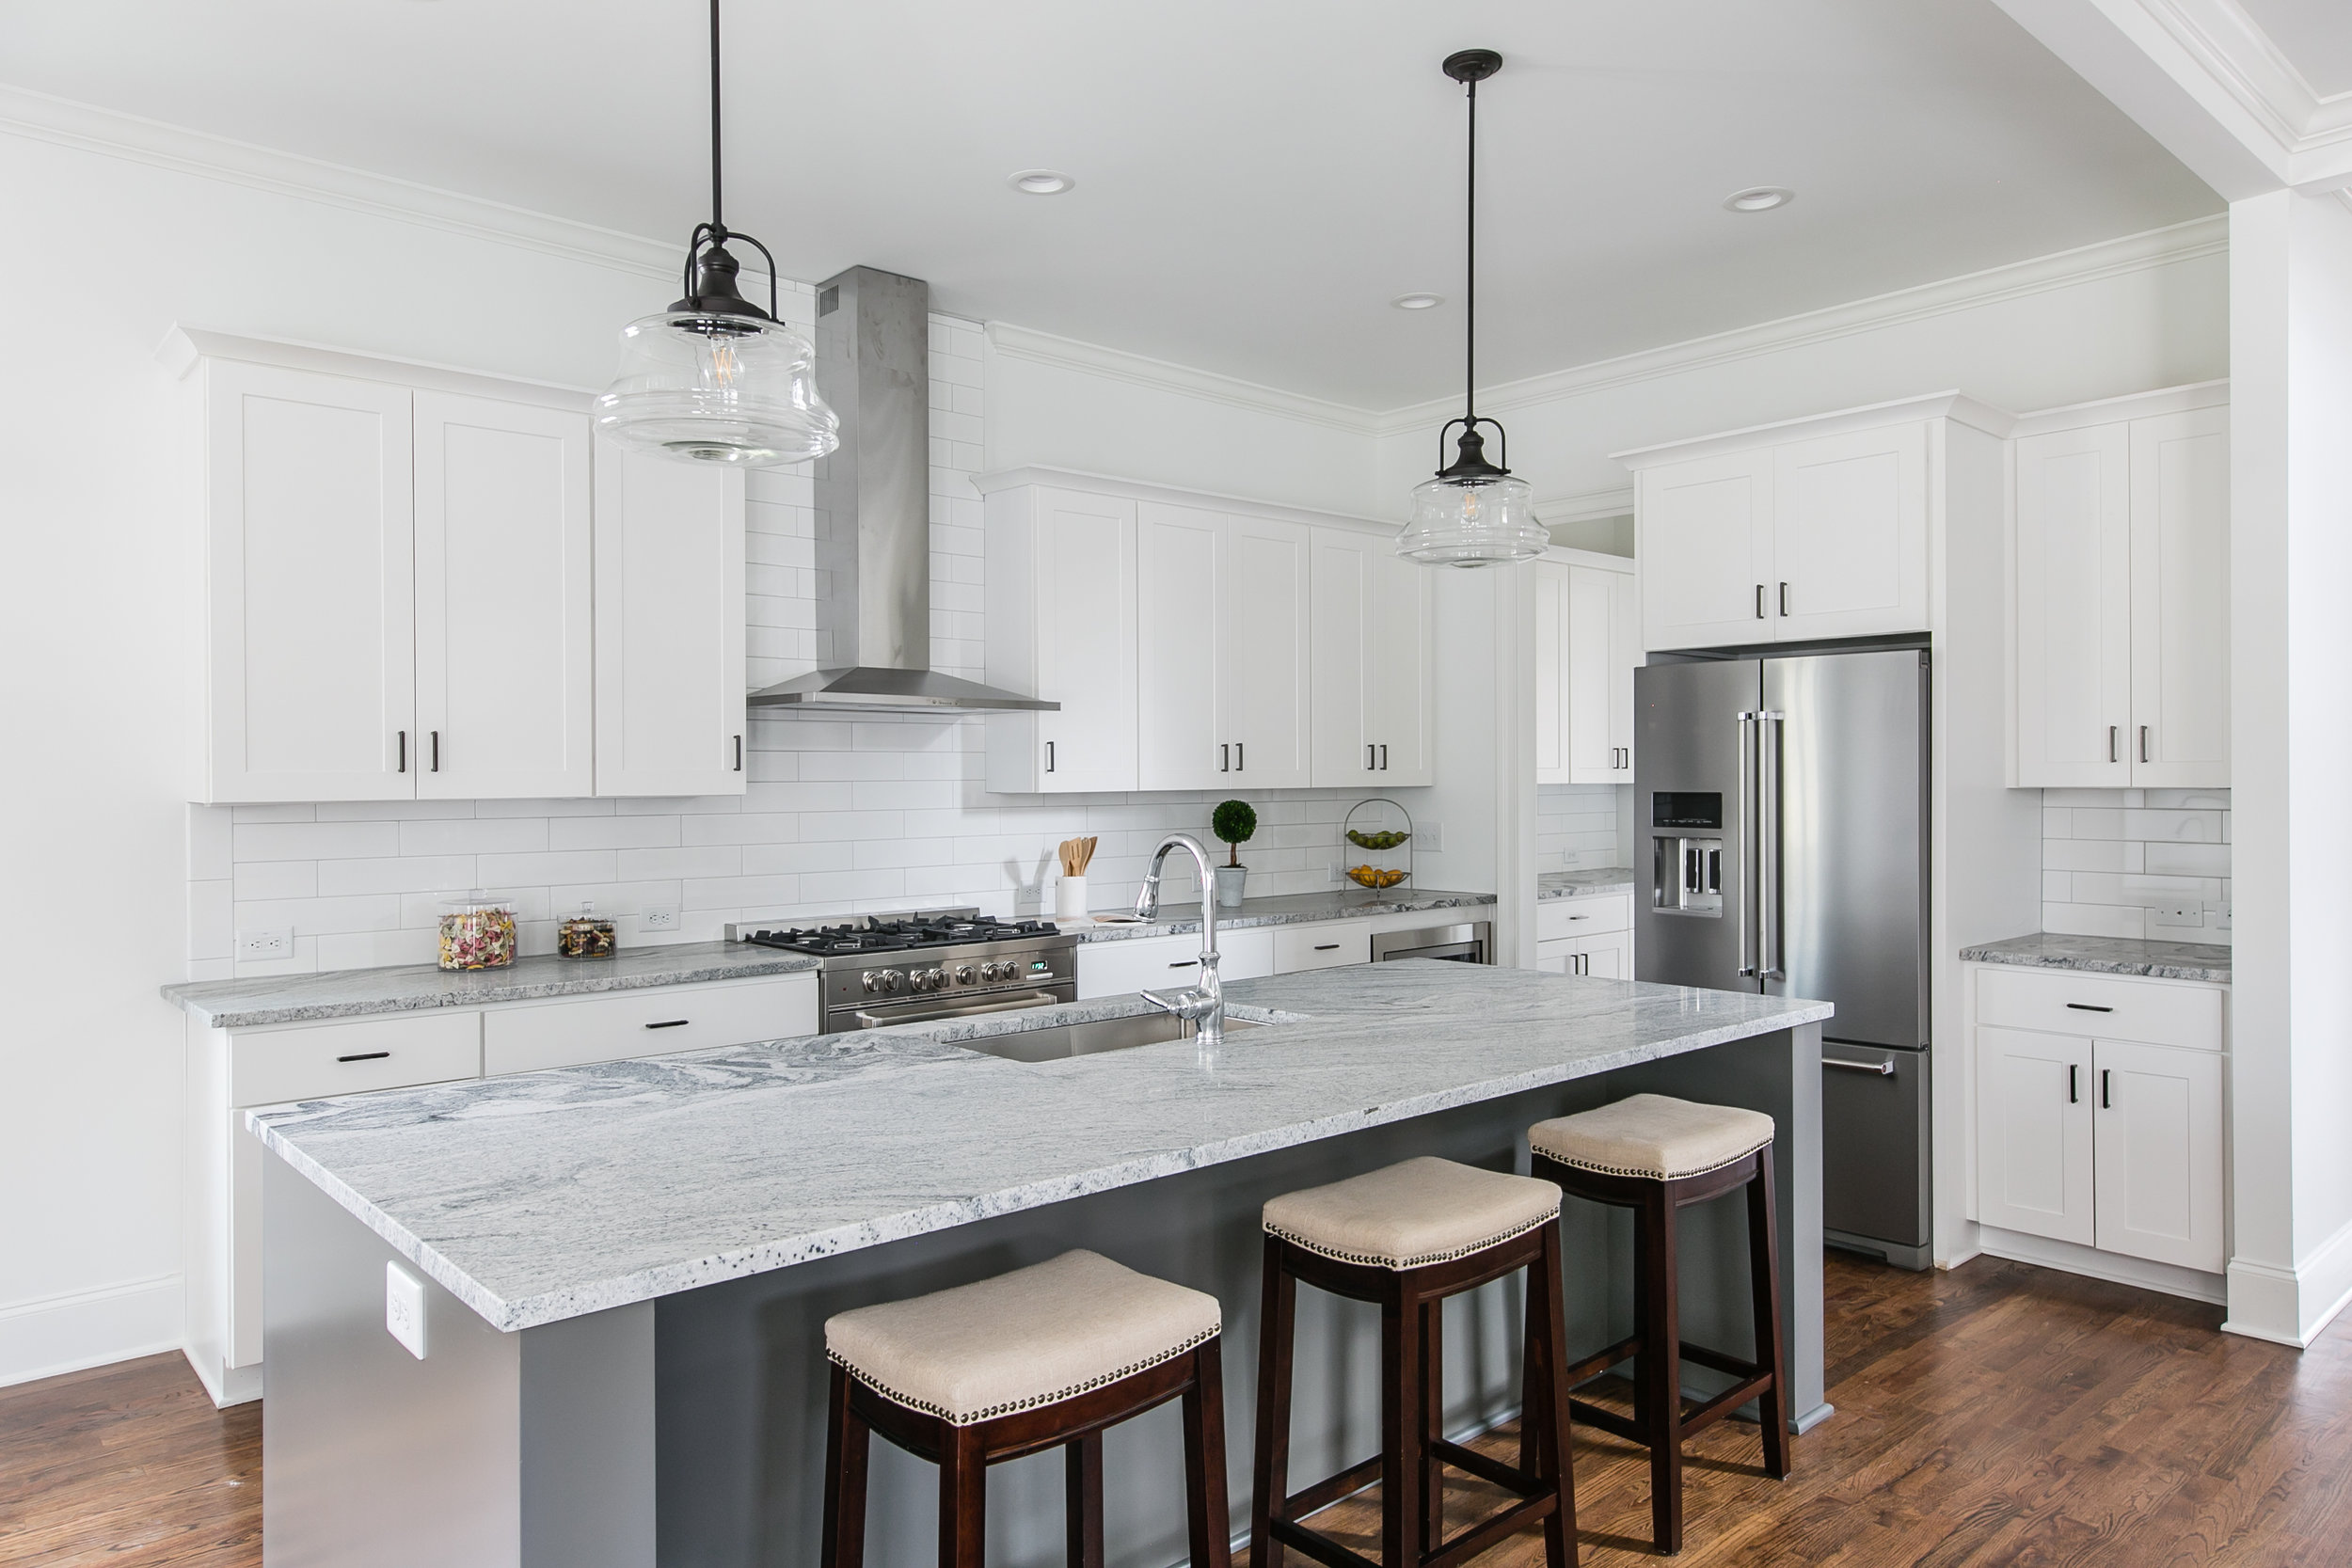 218 Kirkwood-Kitchen 1.jpg